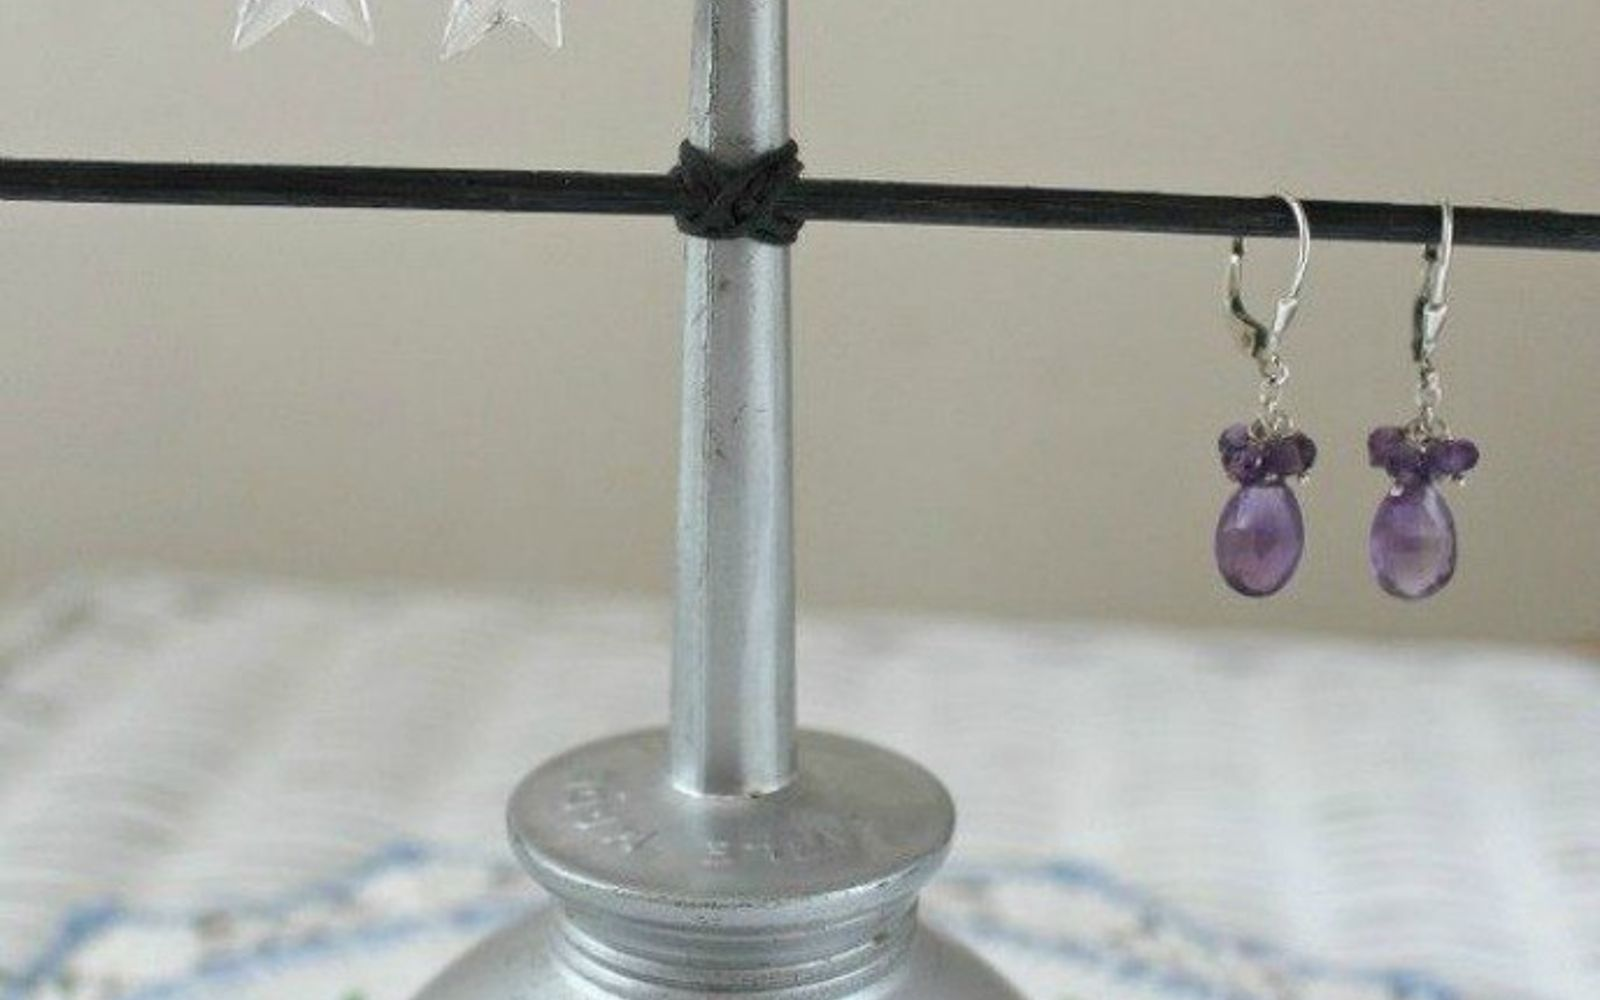 s 21 jewelry organizing ideas that are better than a jewelry box, organizing, This reused vintage oil can and skewers